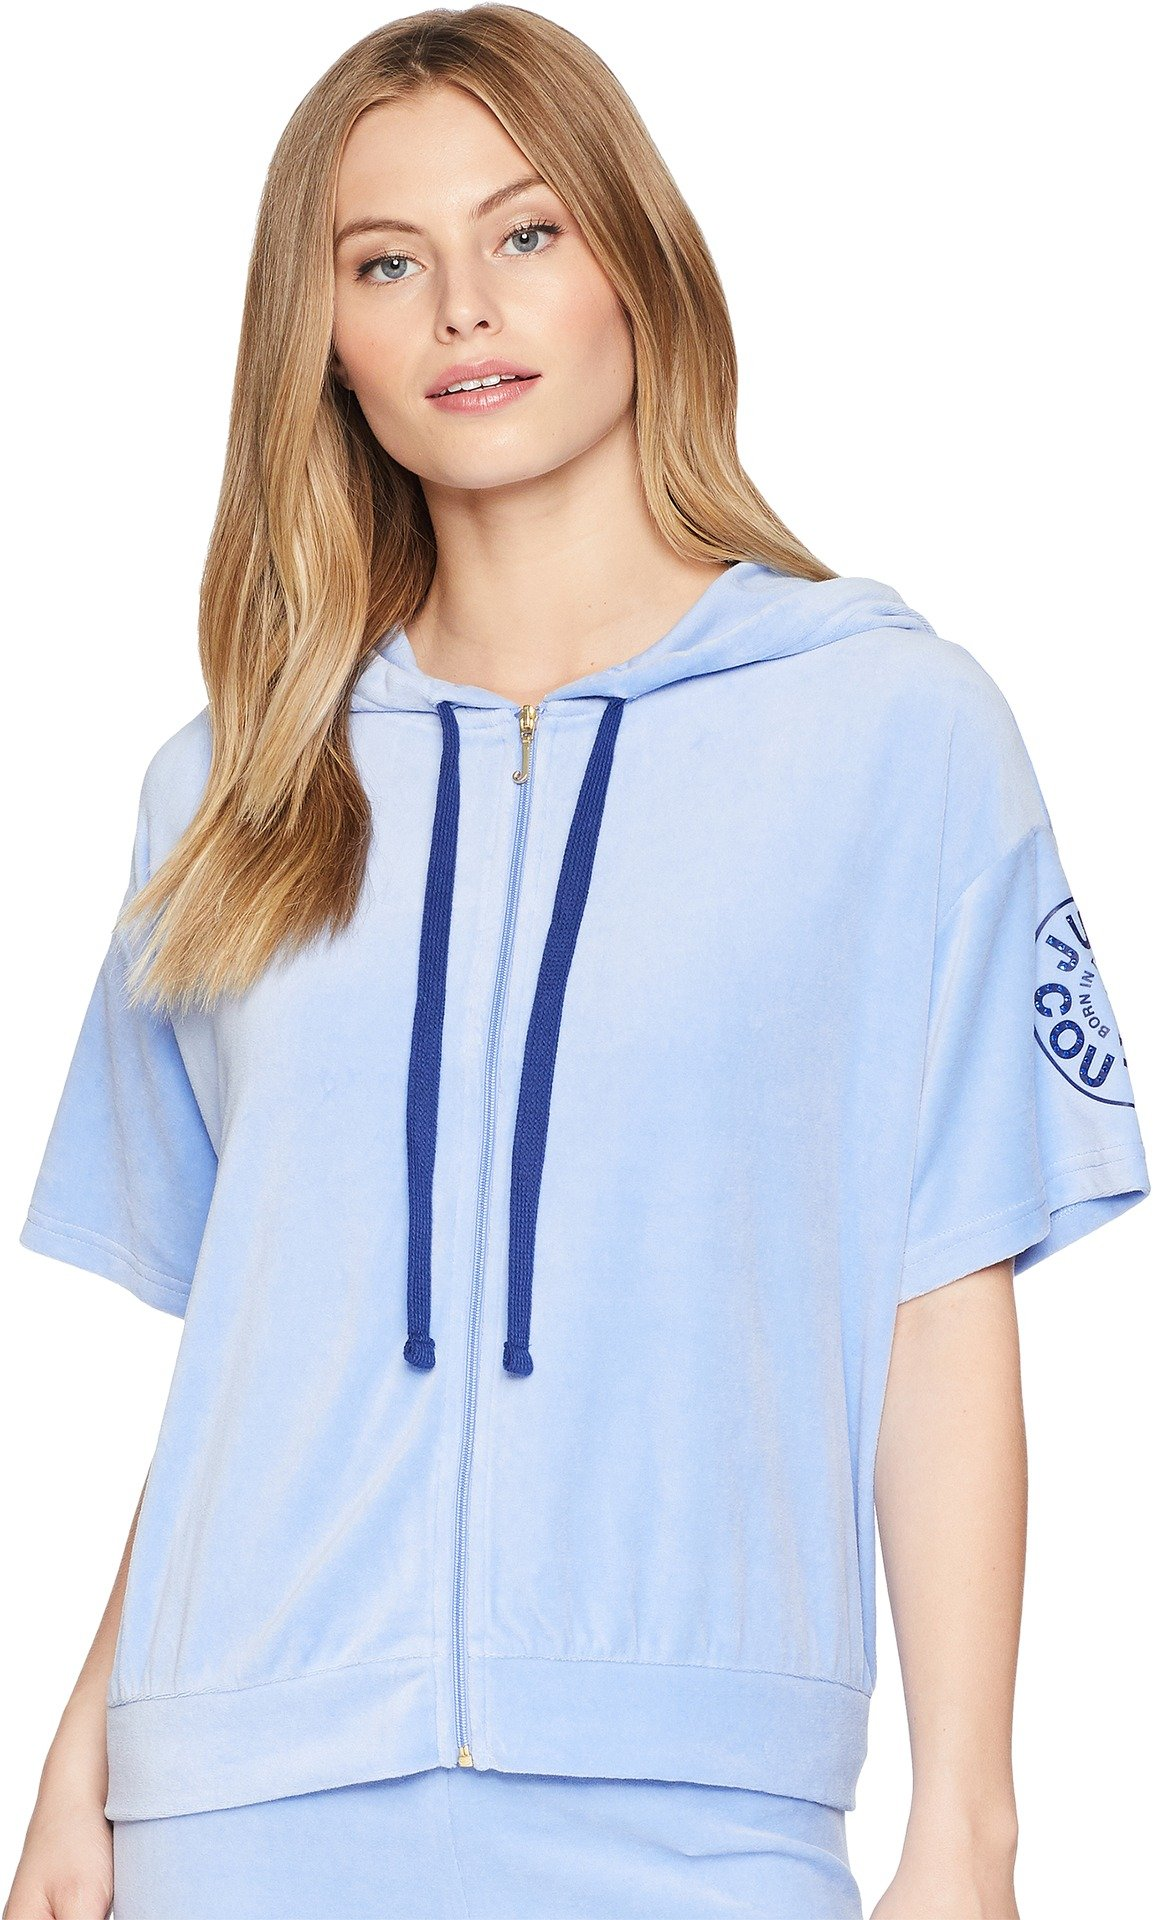 Juicy Couture Women's Batwing Track Jacket w/Circle Star Logo Hydrangea Medium